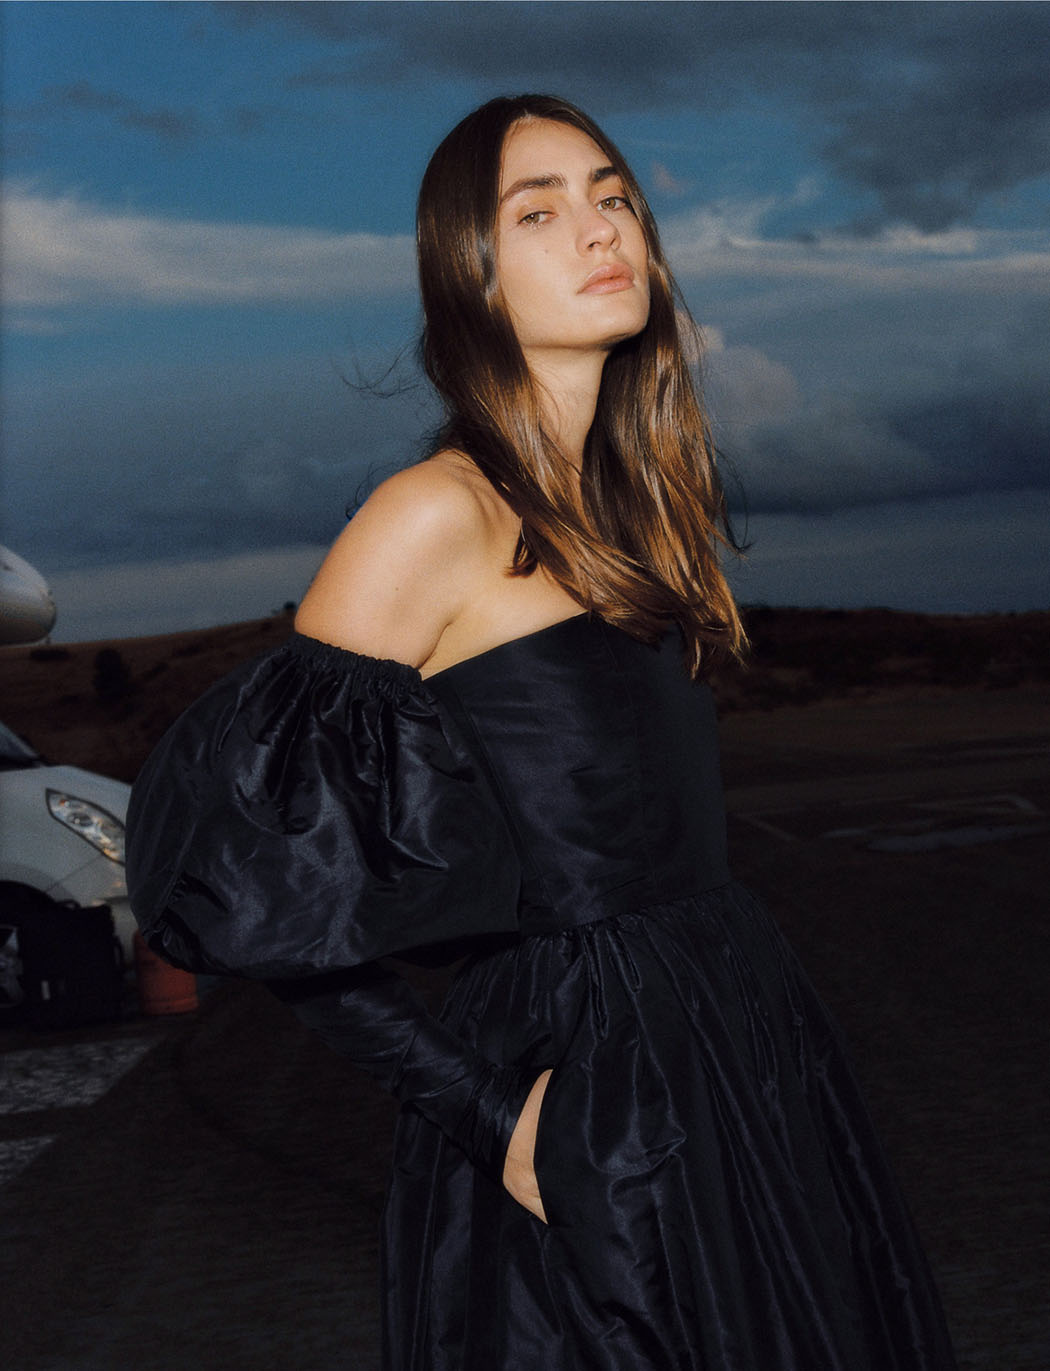 Marine Deleeuw by Pablo Curto for InStyle Spain December 2020